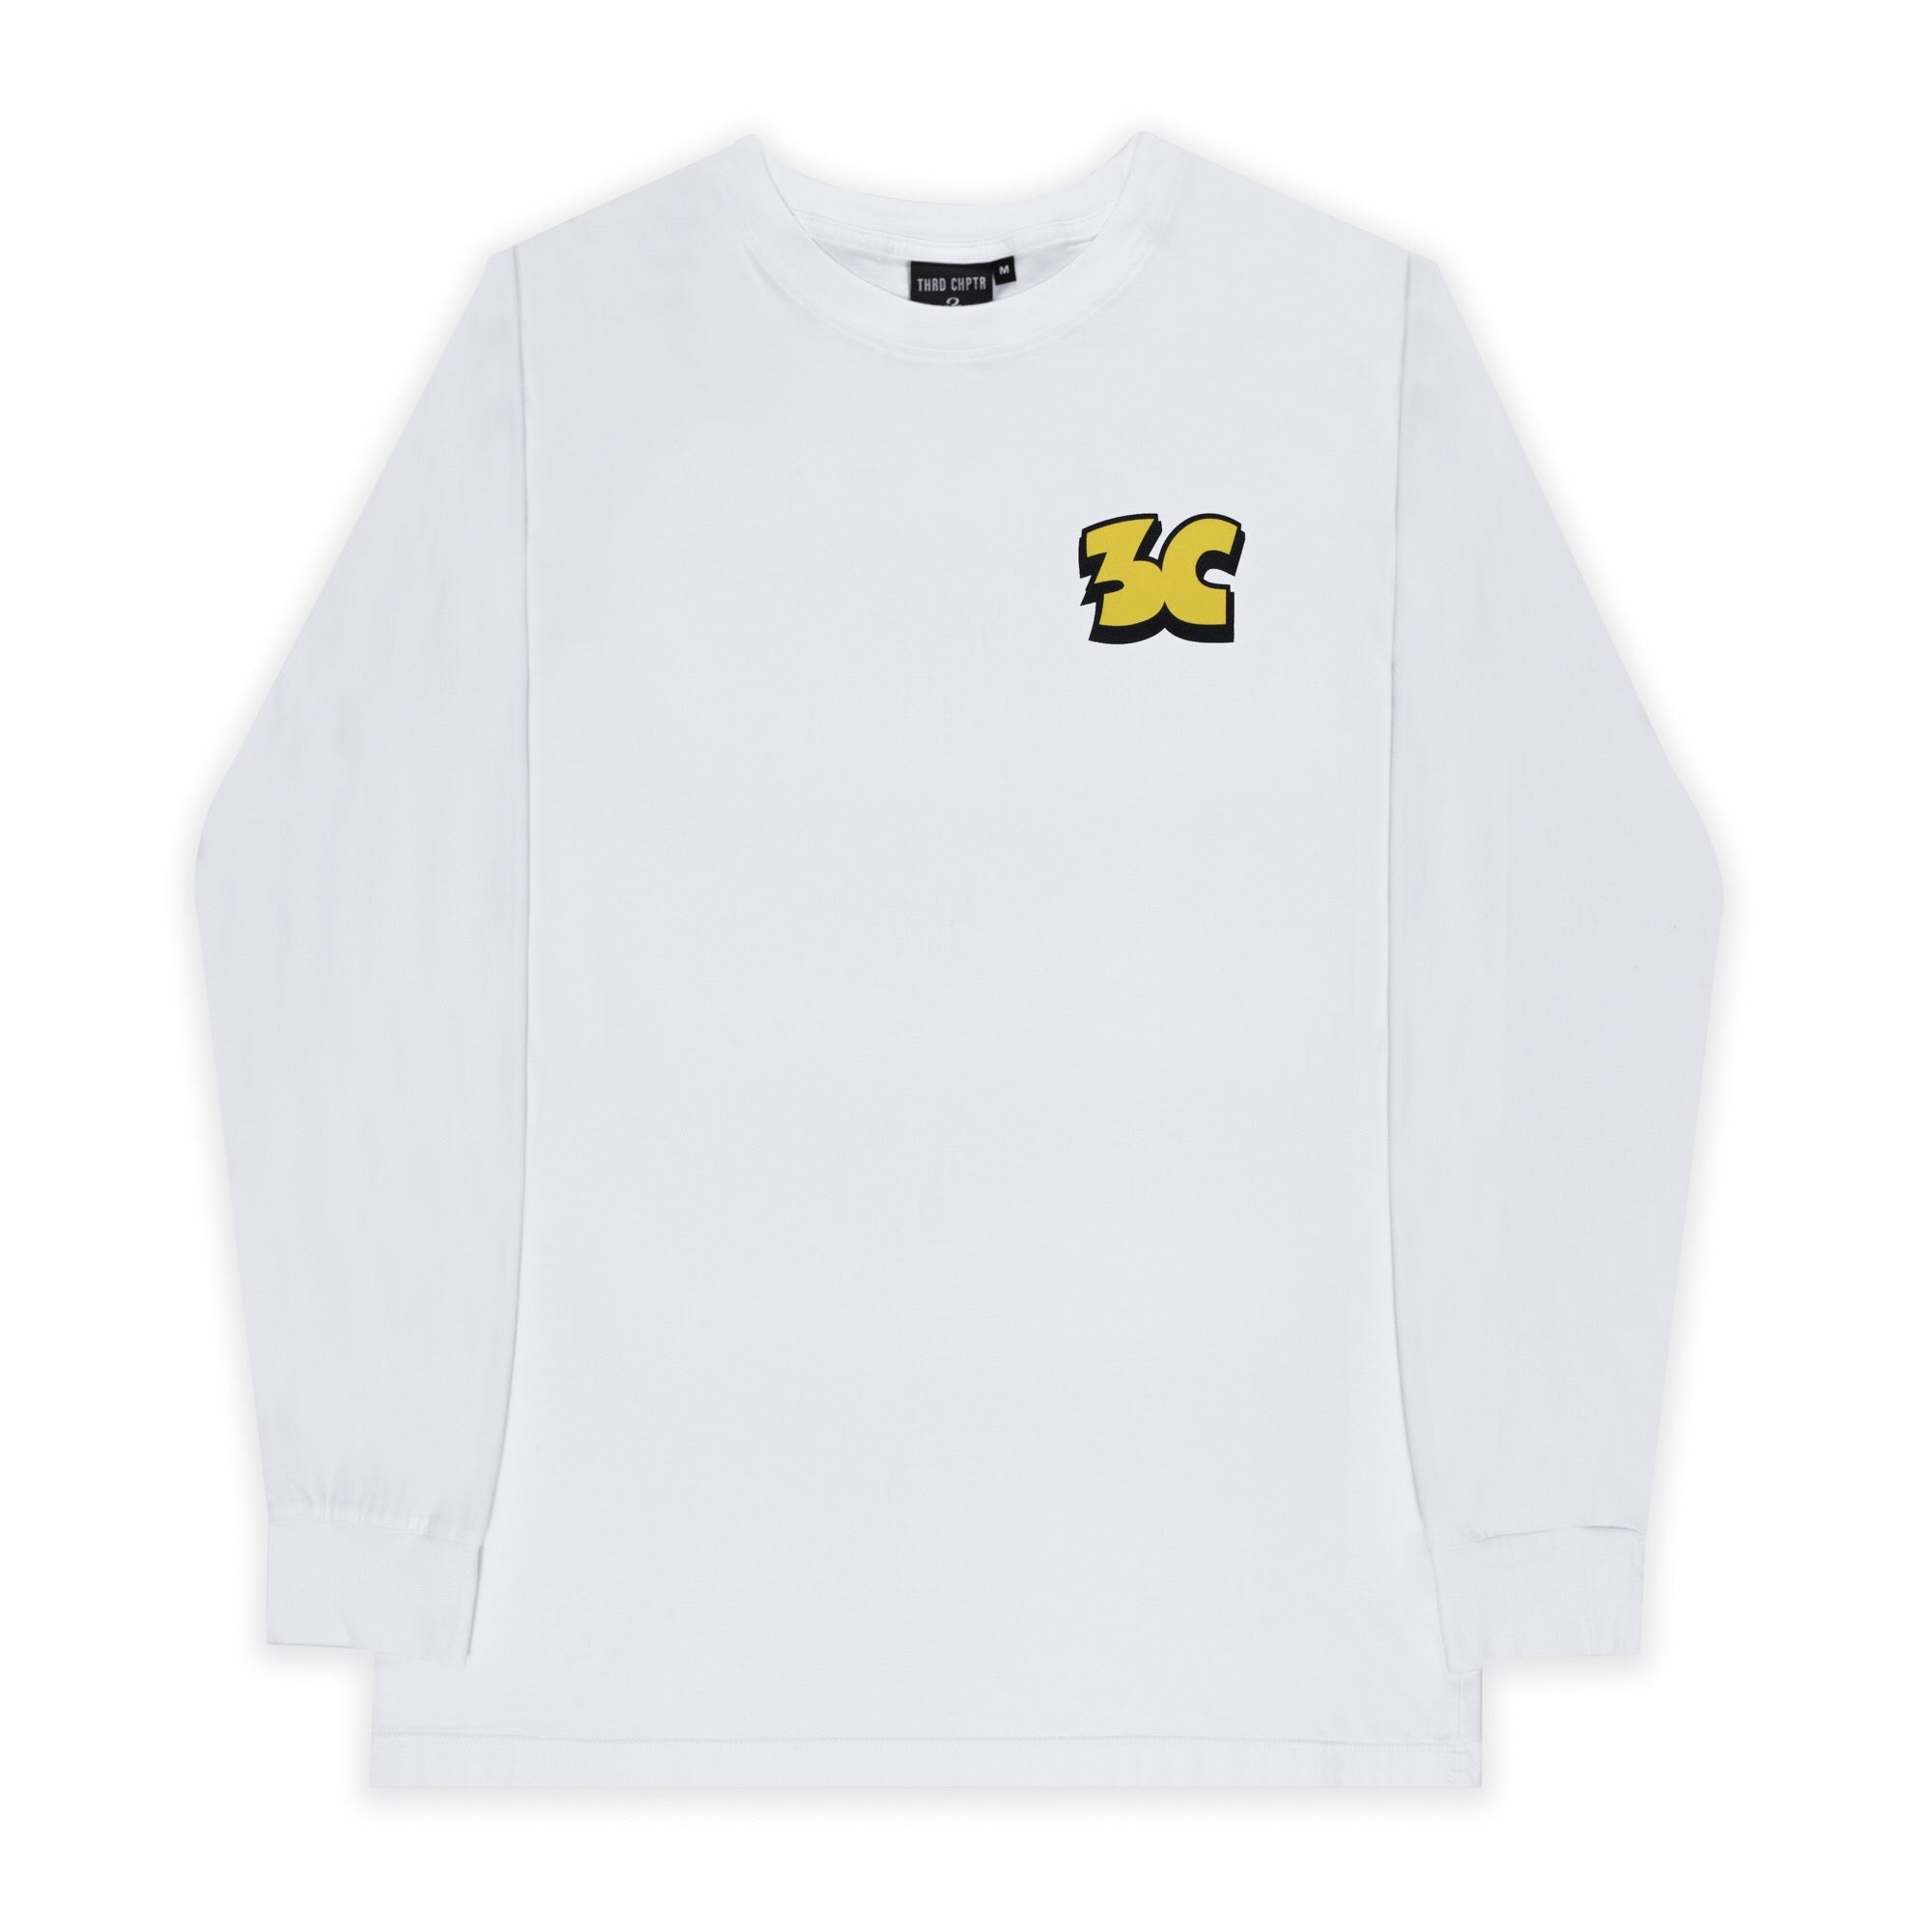 Sour Long Sleeve T-Shirt White